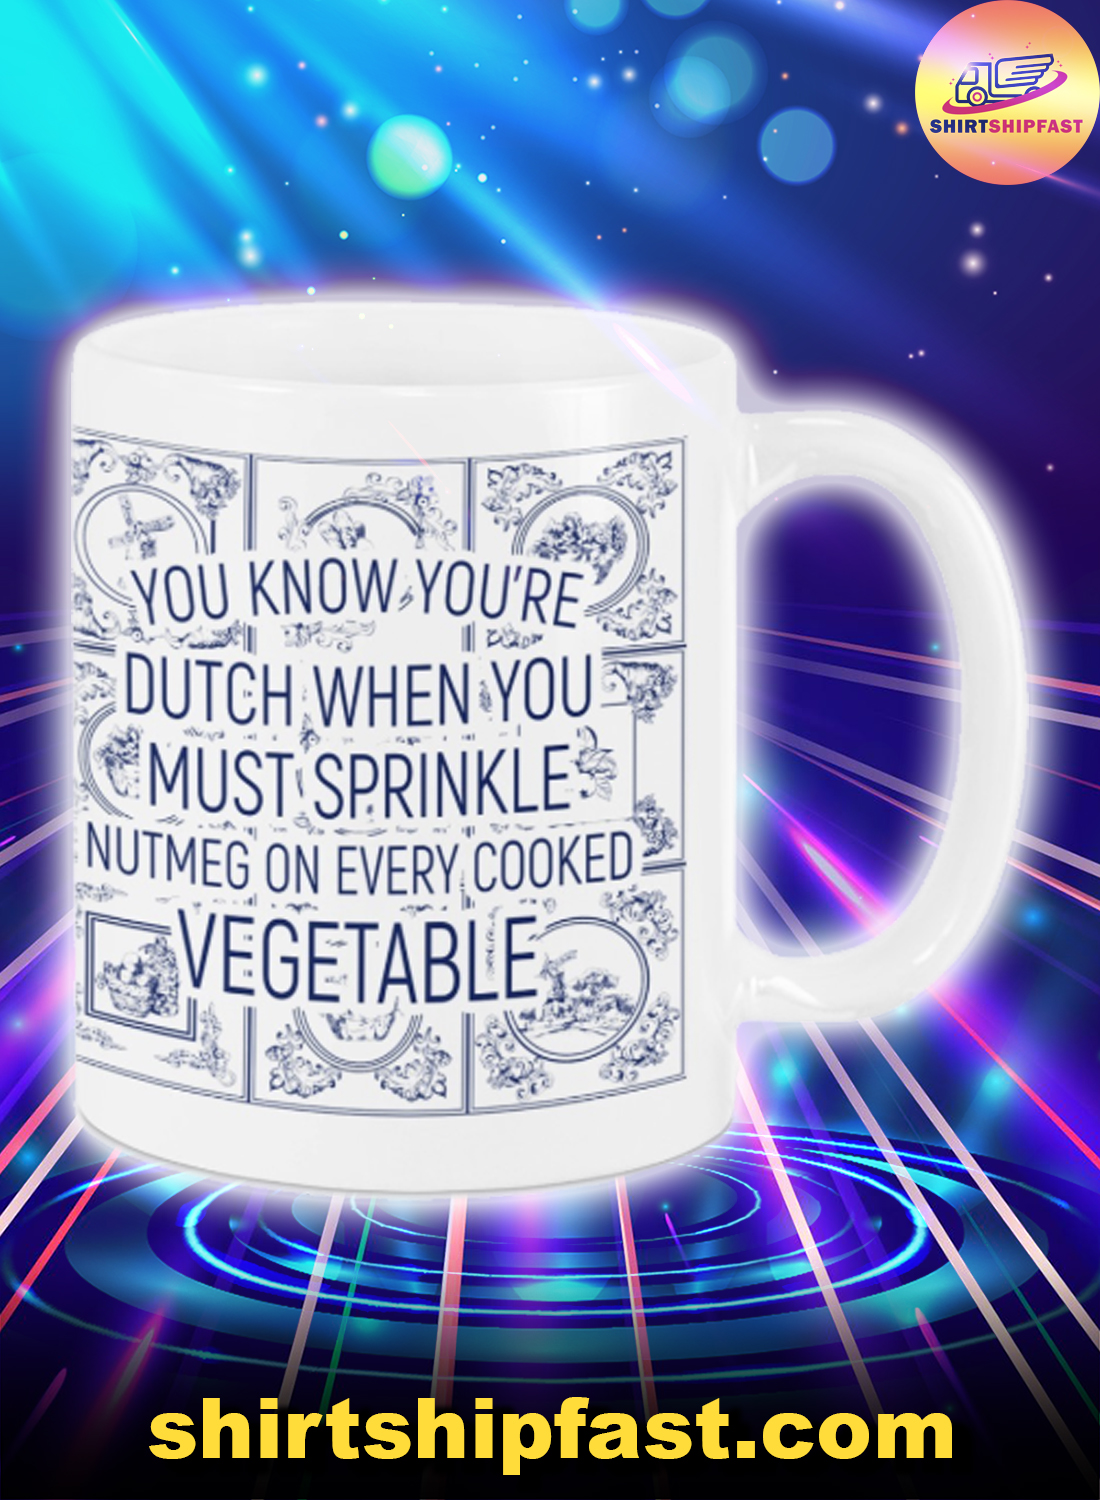 Vegetable You know you're Dutch when you must sprinkle mug